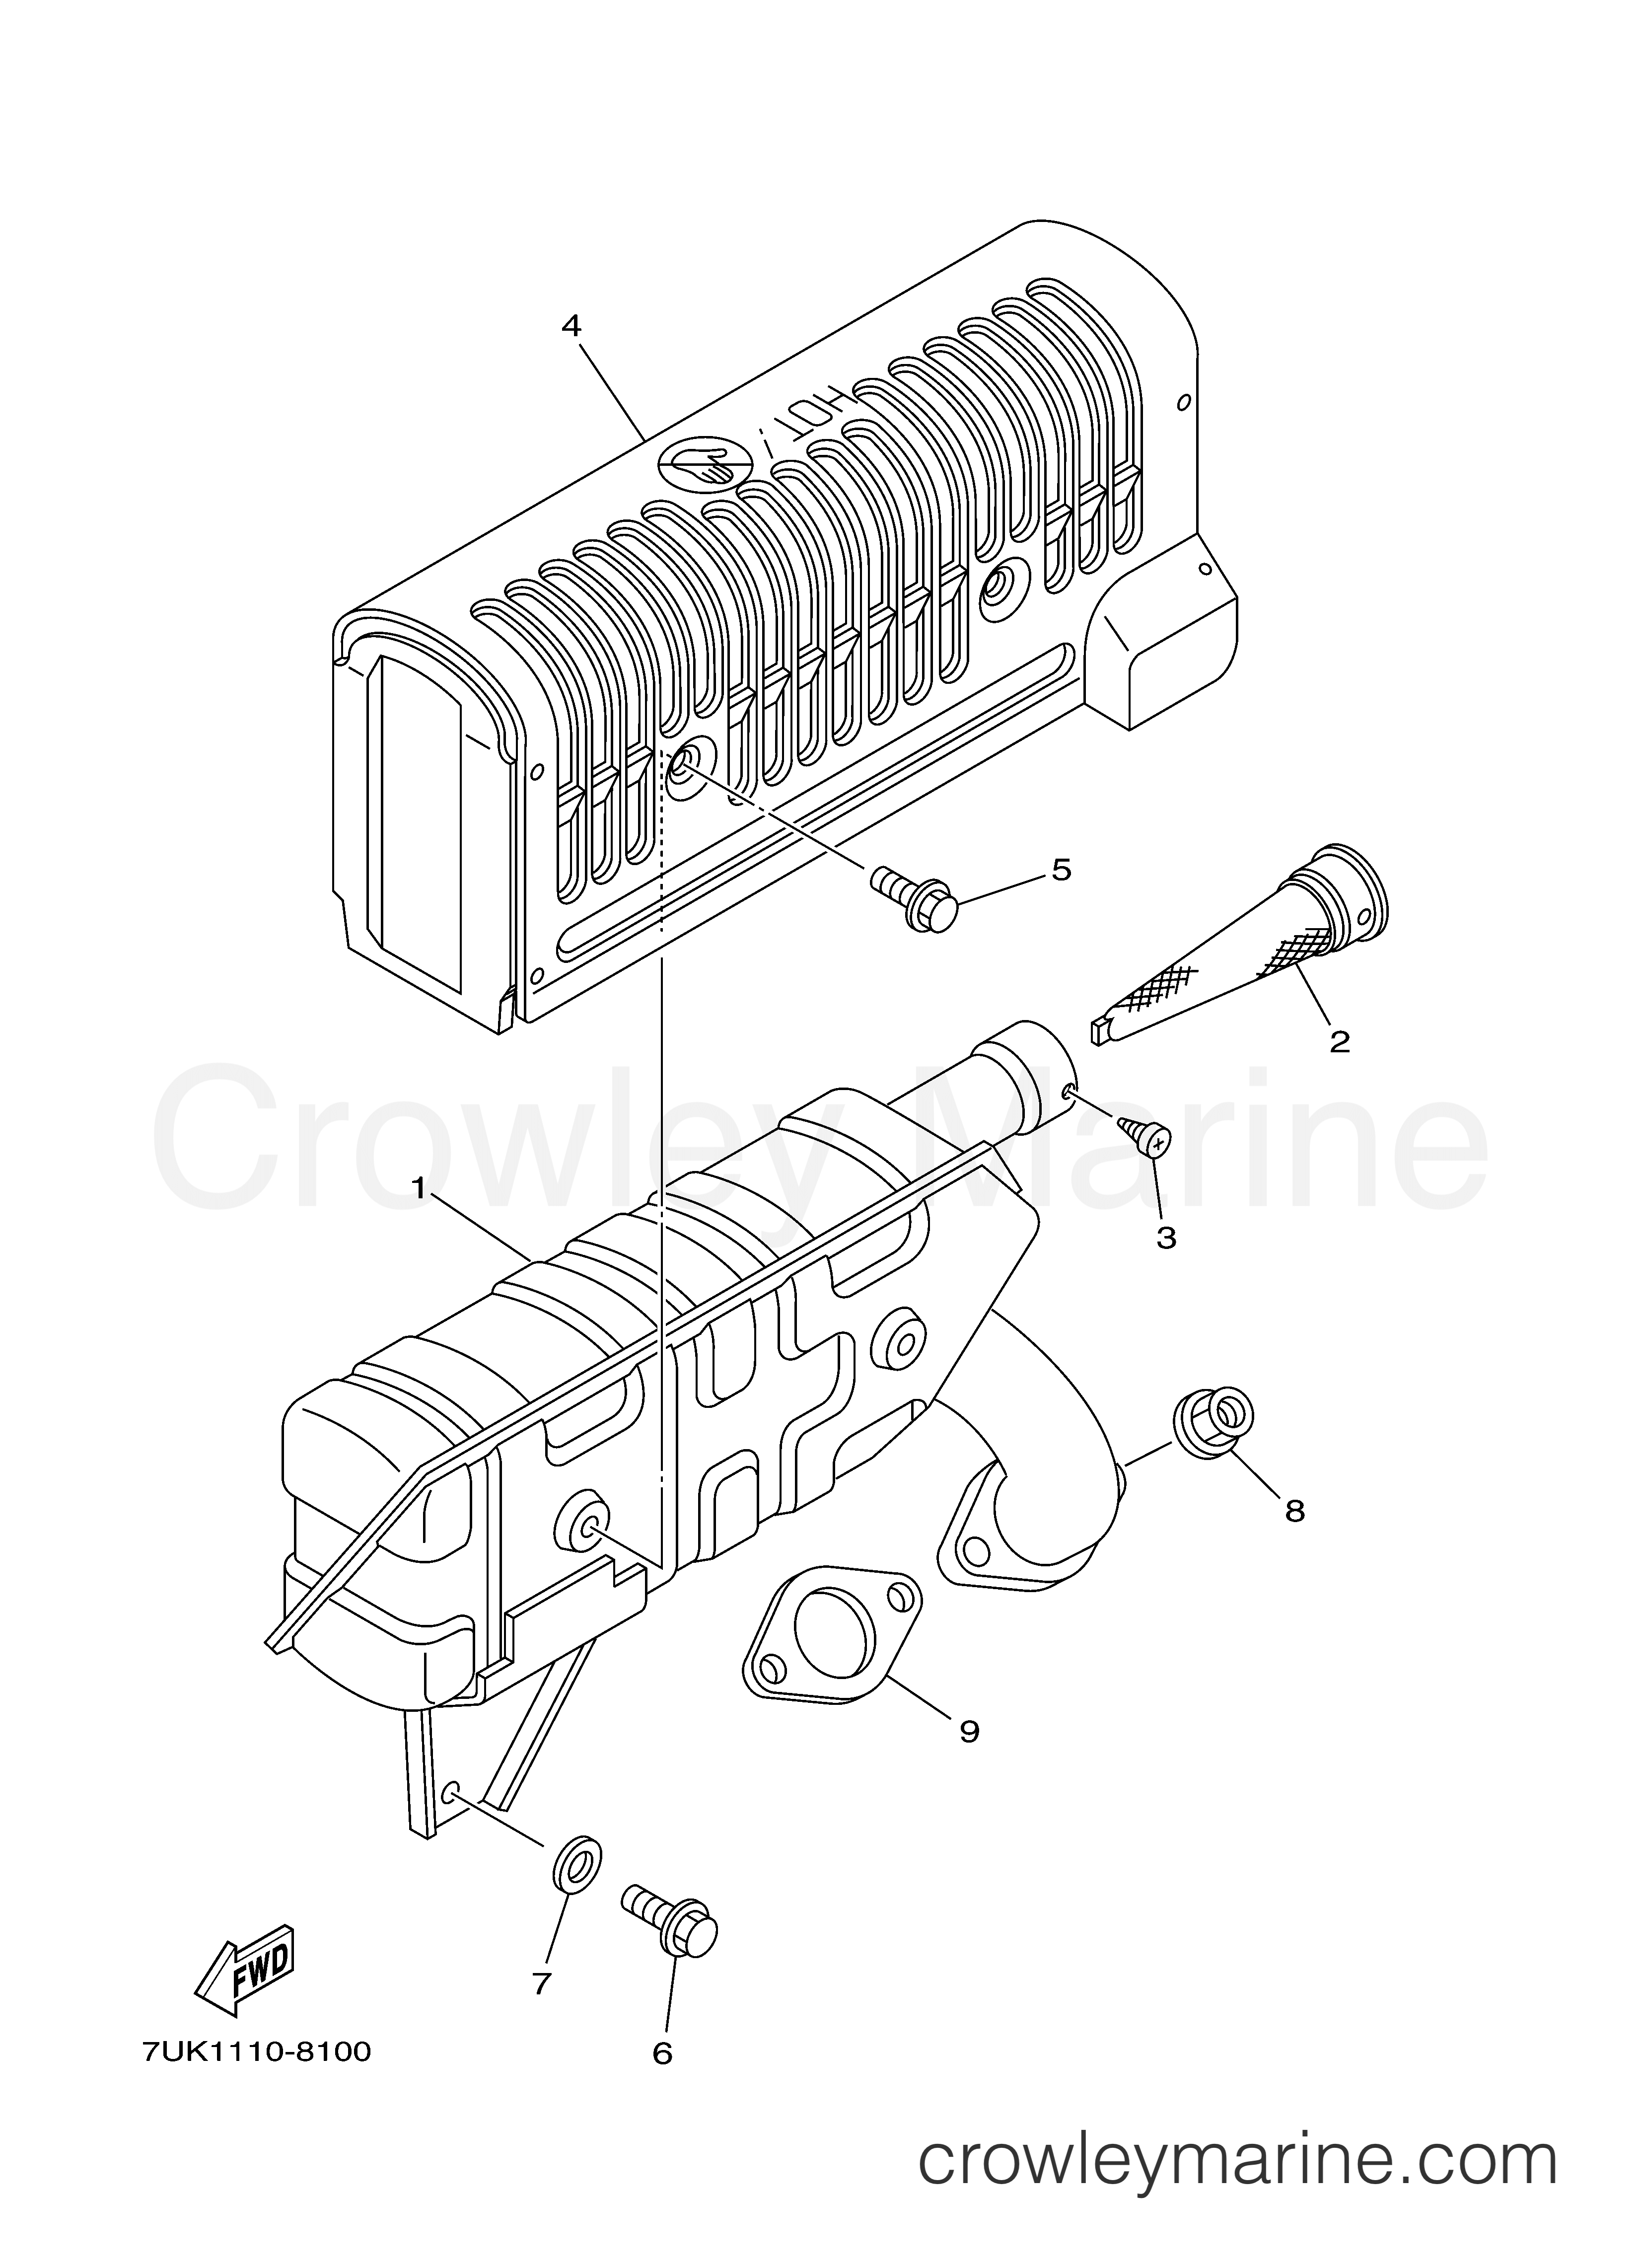 Rotax Exhaust Parts - Wiring Diagram And Engine Diagram